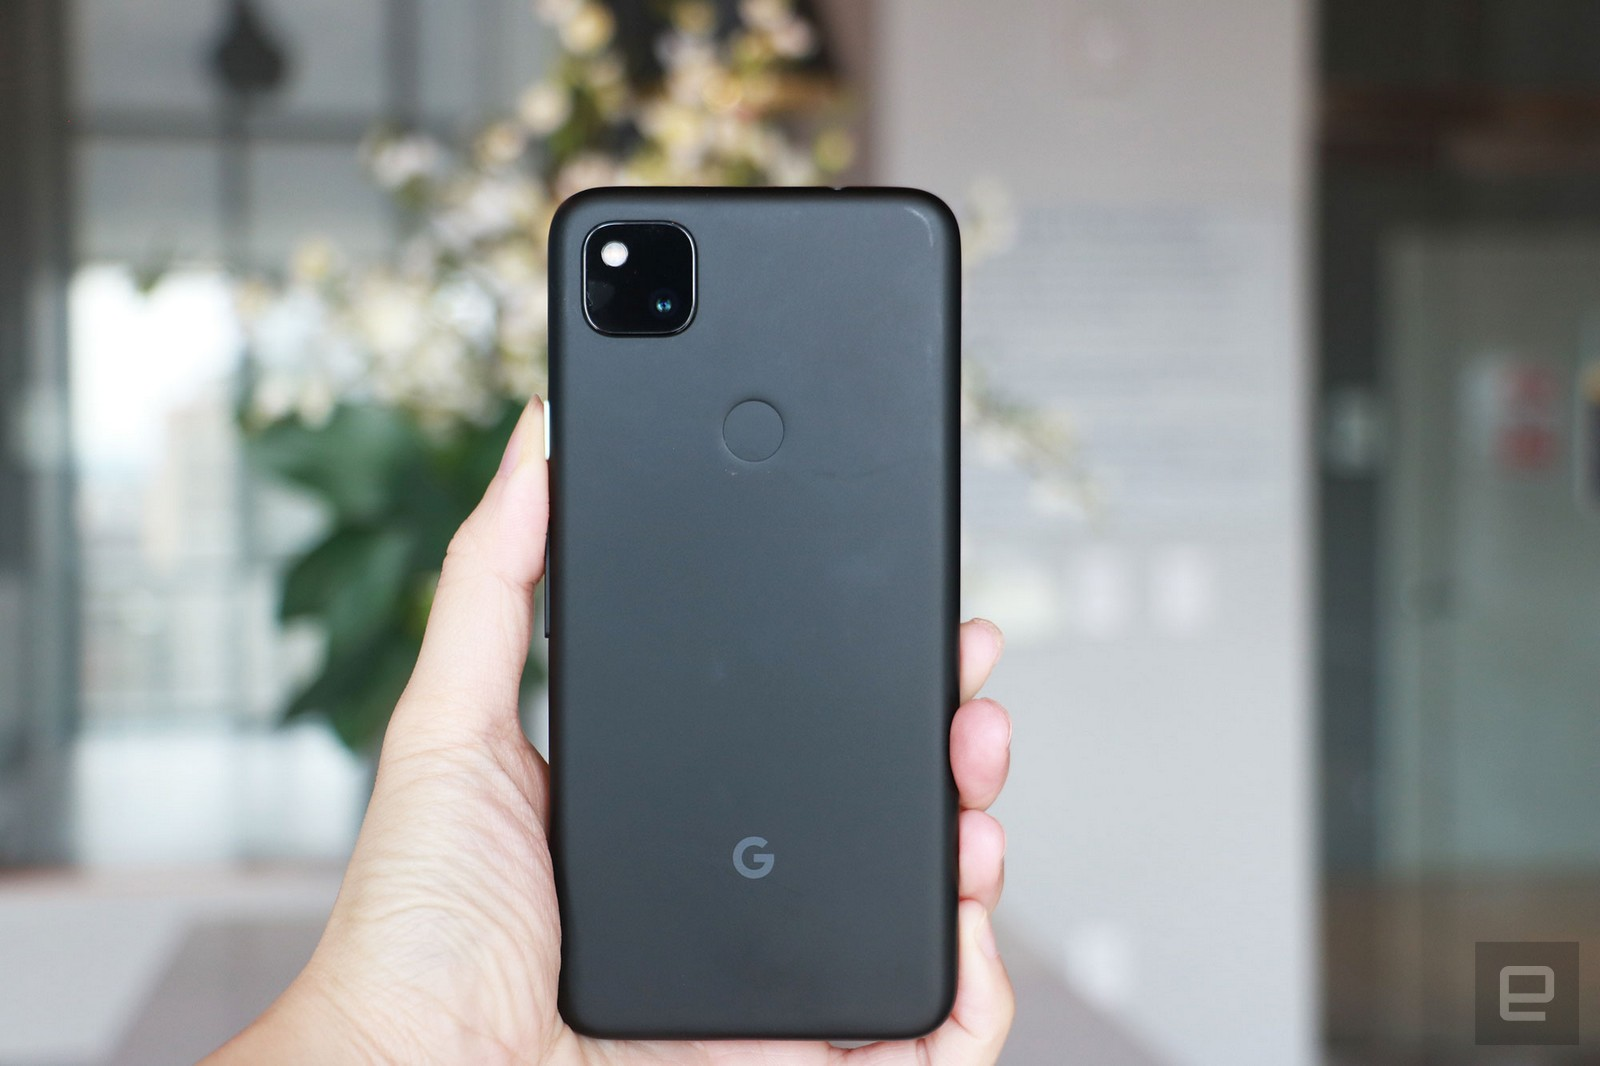 Google Launches Pixel 4a, a $349 iPhone SE Competitor